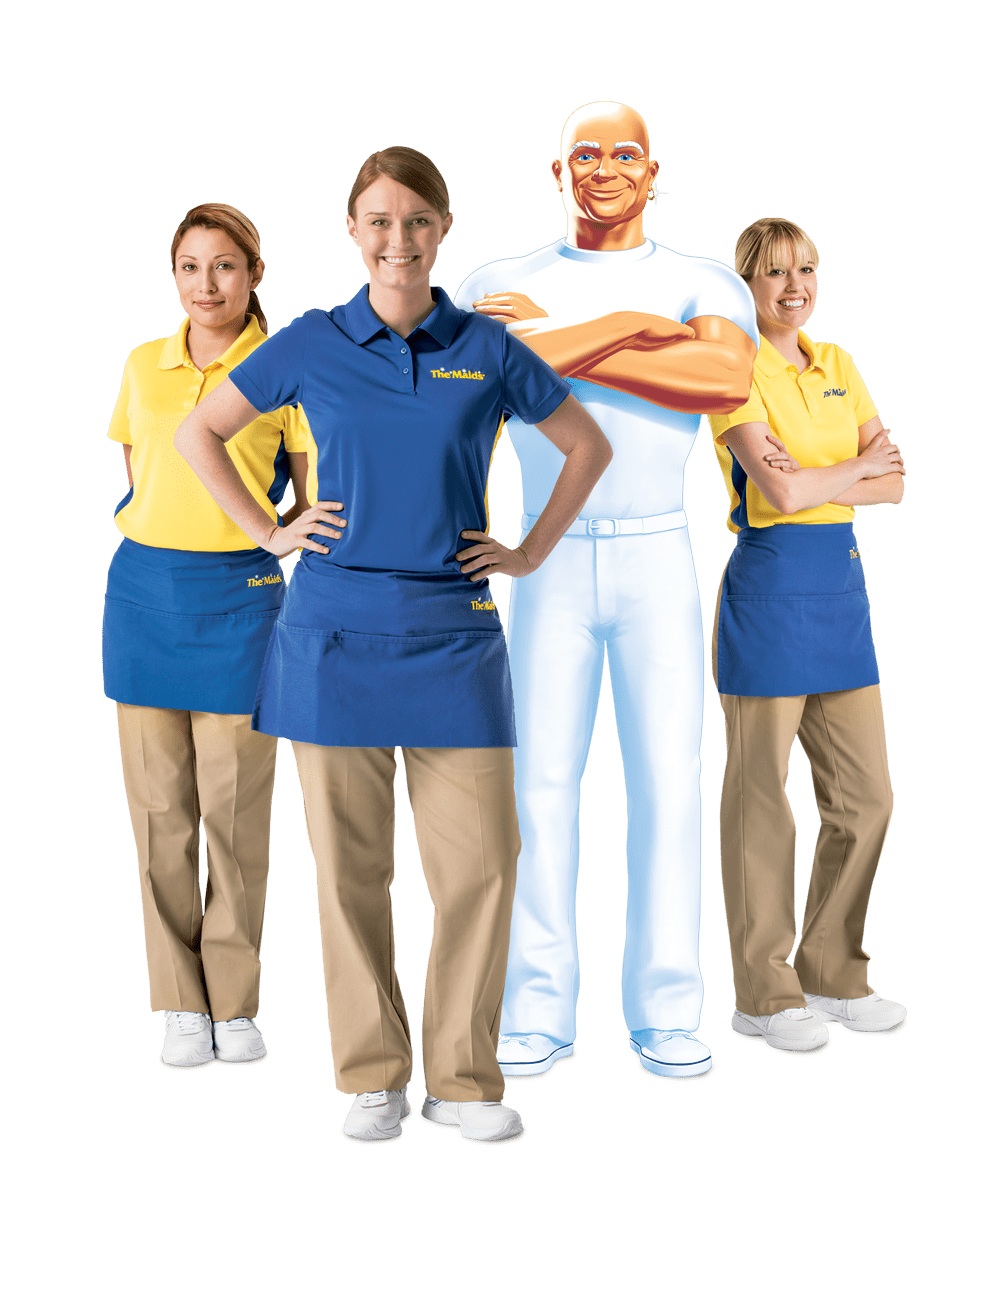 The Maids House Cleaning - The Maids in Mobile Home Cleaning